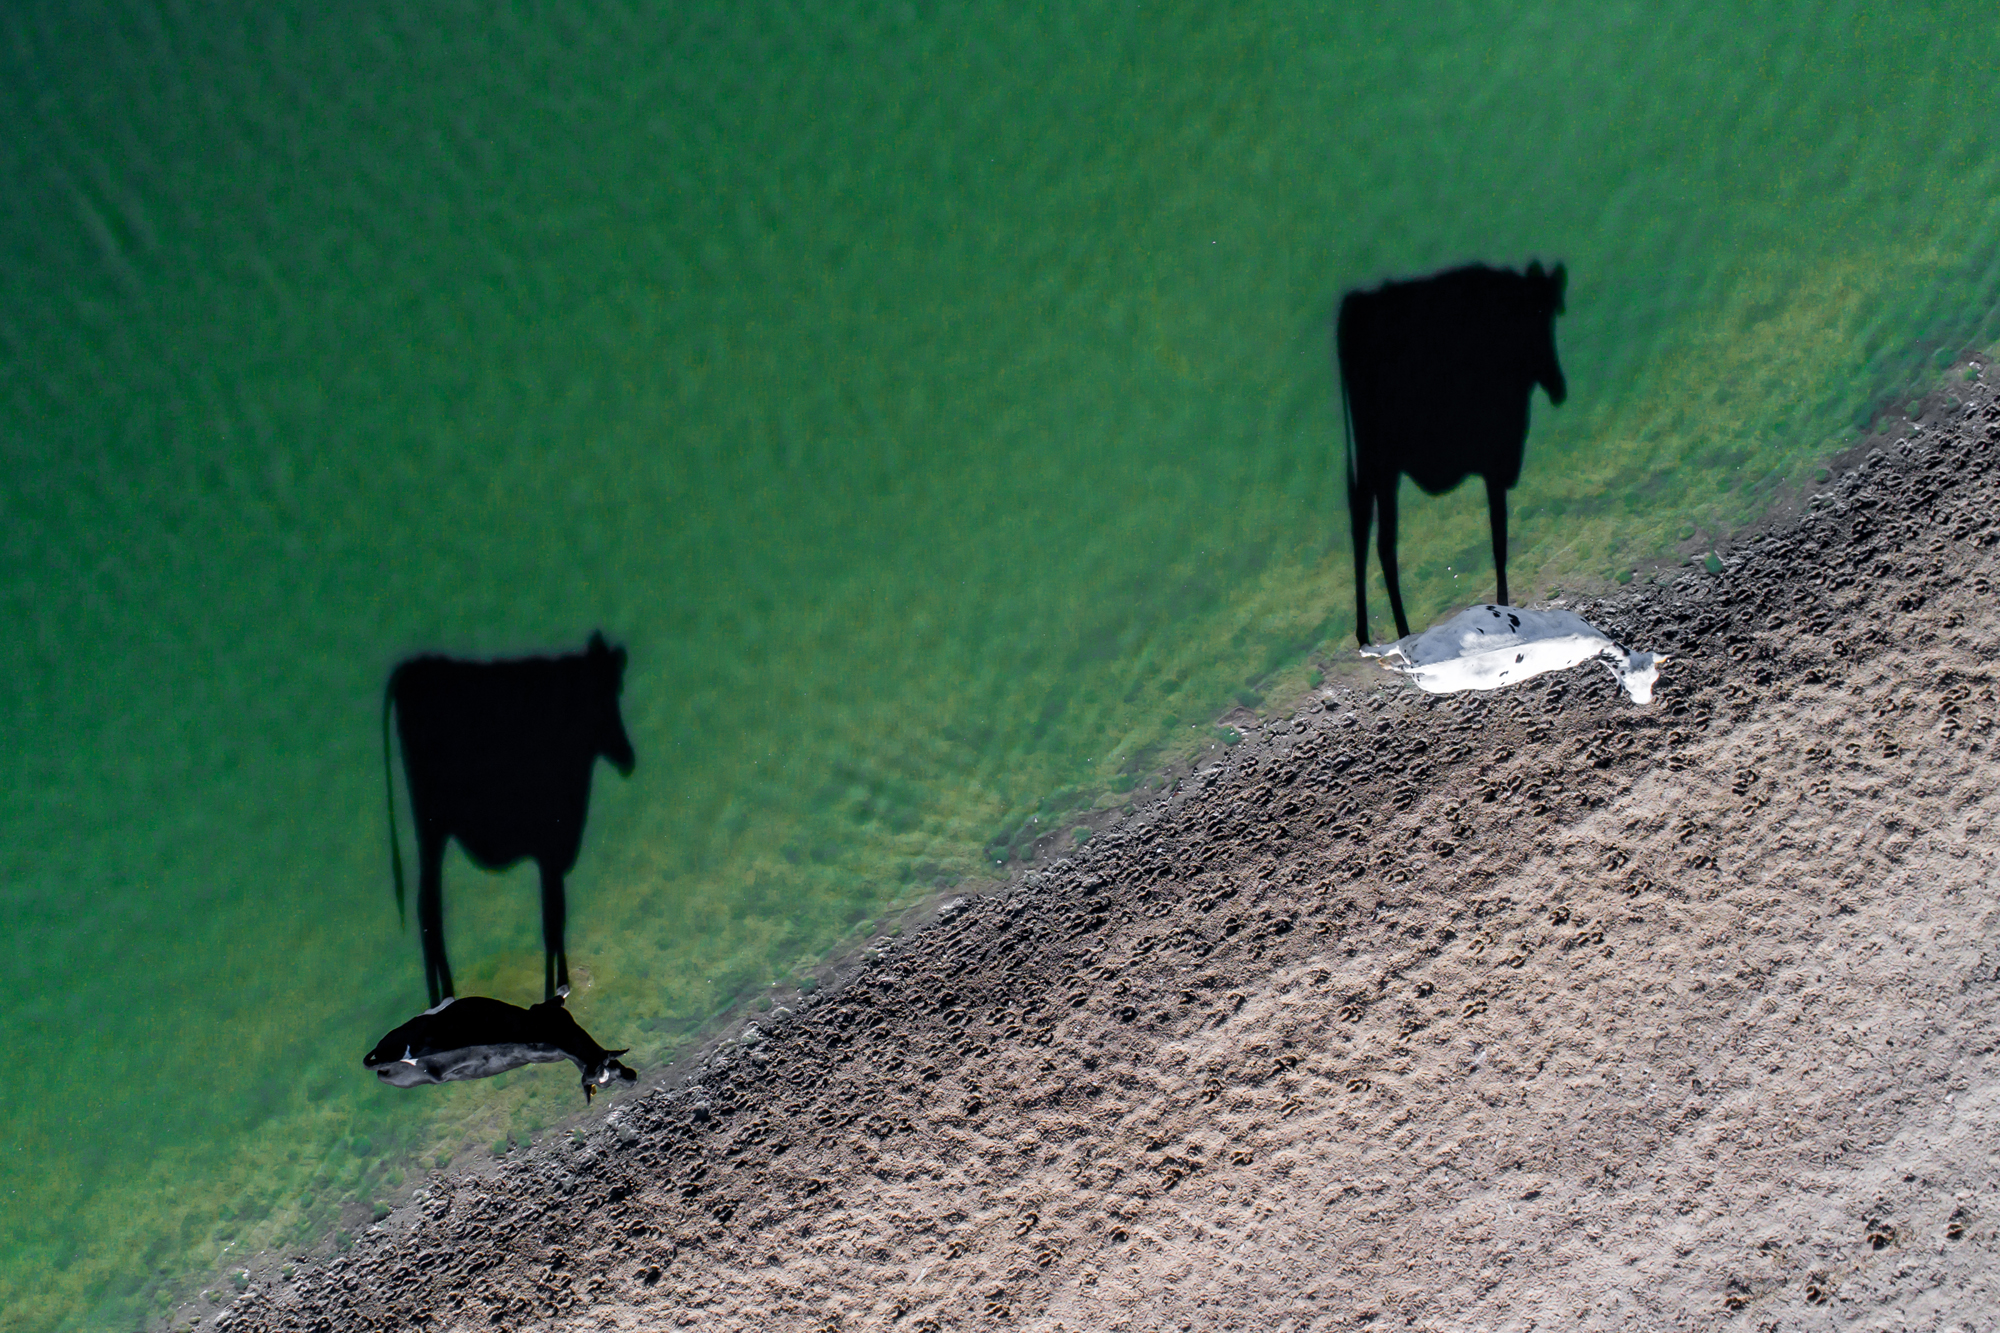 2nd place in the Creativity category Two Moo by Luke Bell (Luke Bell/Dronestagram)